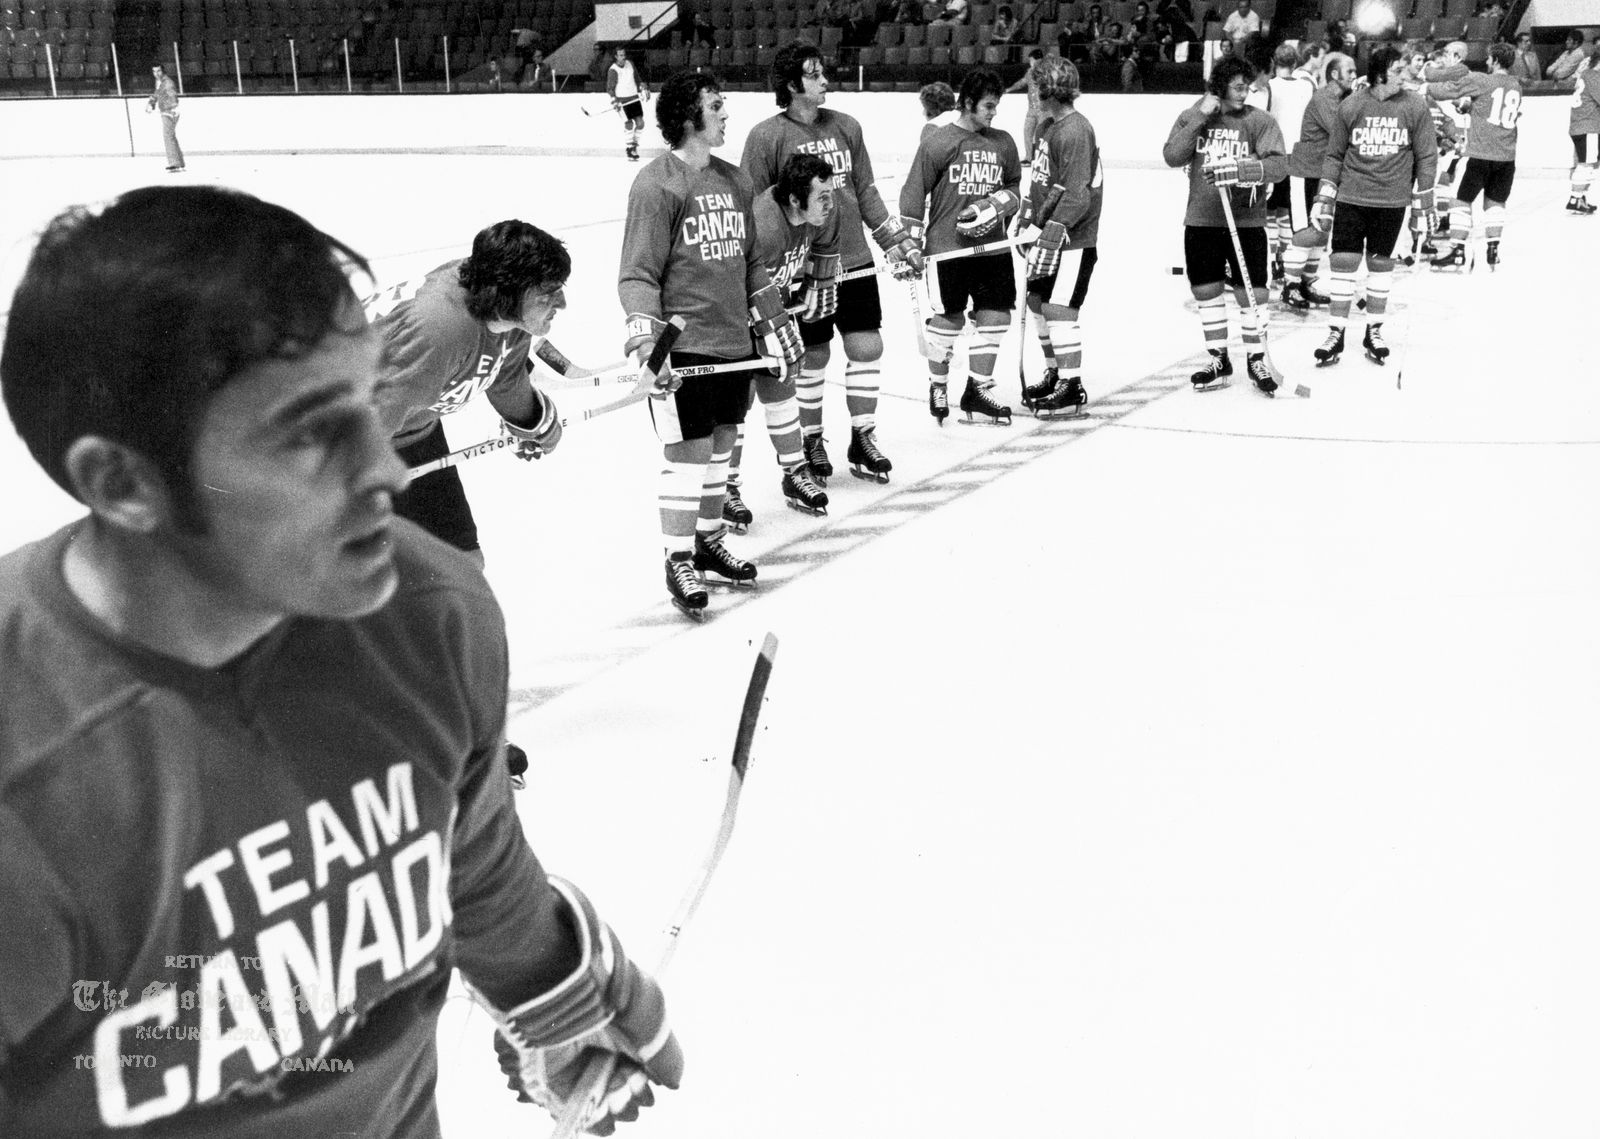 AUGUST 14, 1972 -- TORONTO -- TEAM CANADA TRAINING CAMP -- Team Canada members during first practice session at Maple Leaf Gardens in Toronto on August 14, 1972. Series against Russia starts Sept. 2, 1972 in Montreal. Photo by Barrie Davis / The Globe and Mail. Not published.